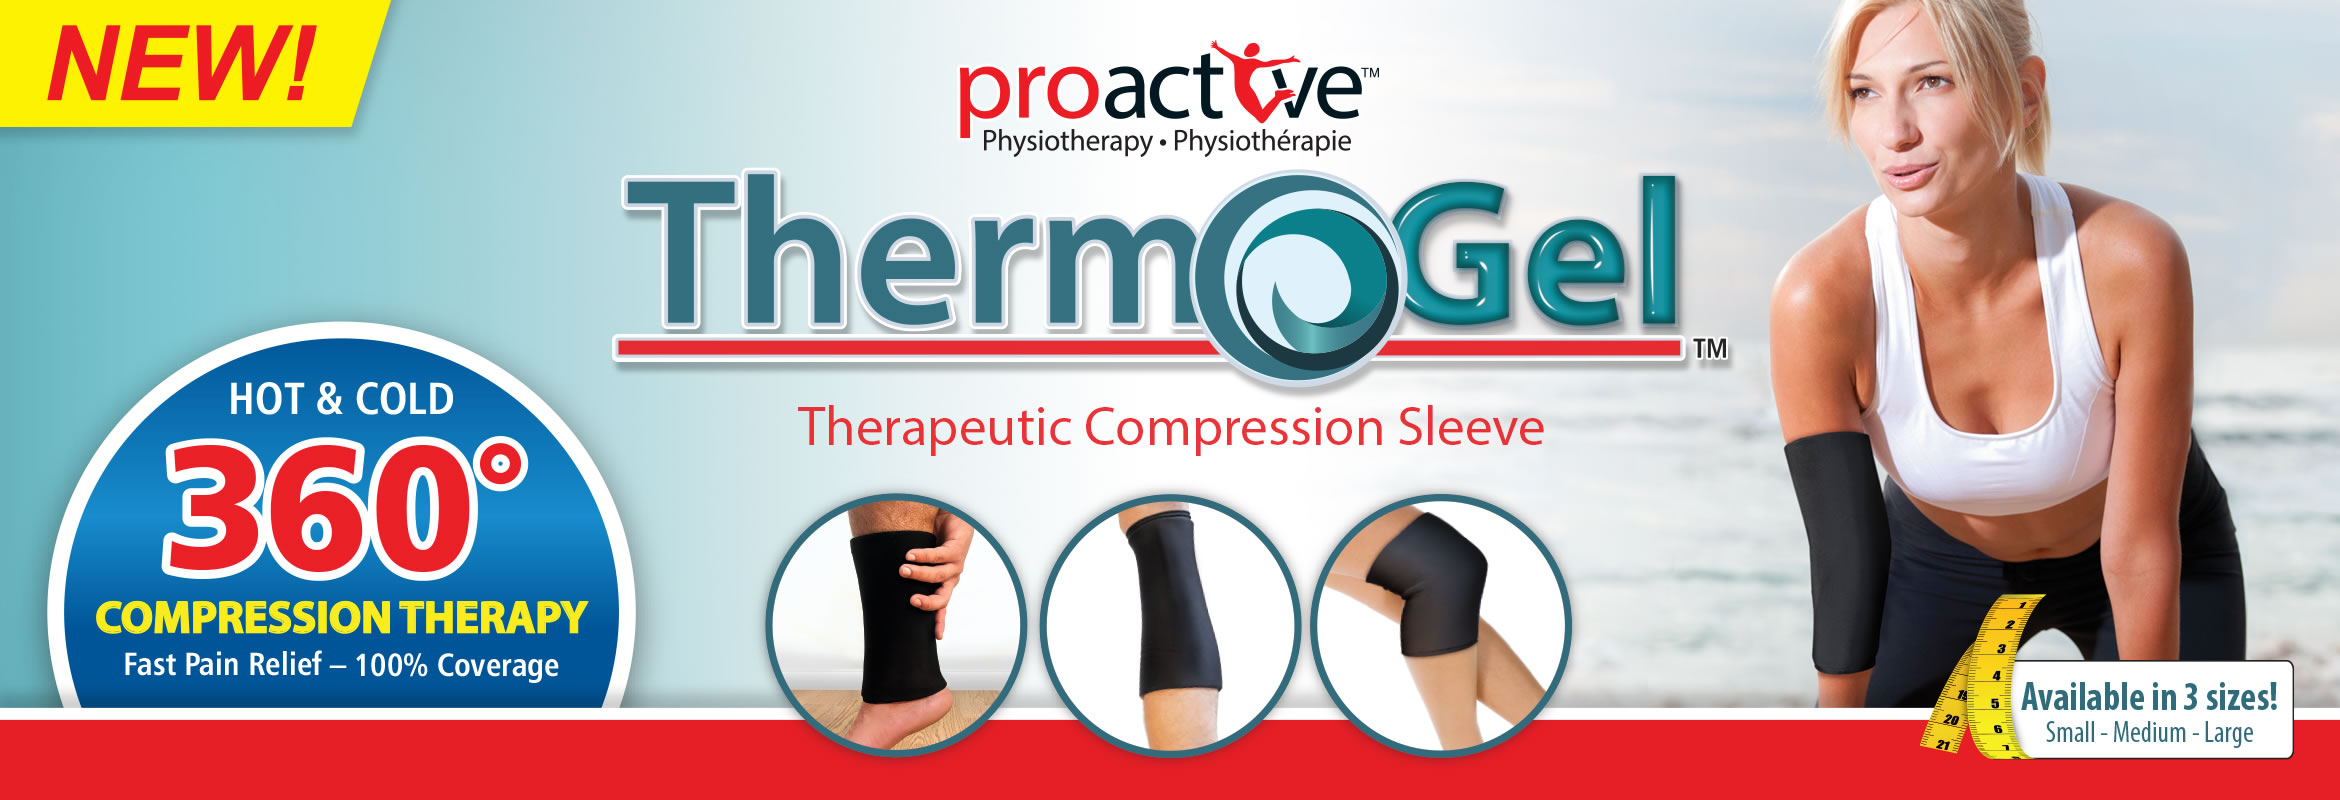 Hot & Cold 360° Compression therapy, compression sleeve